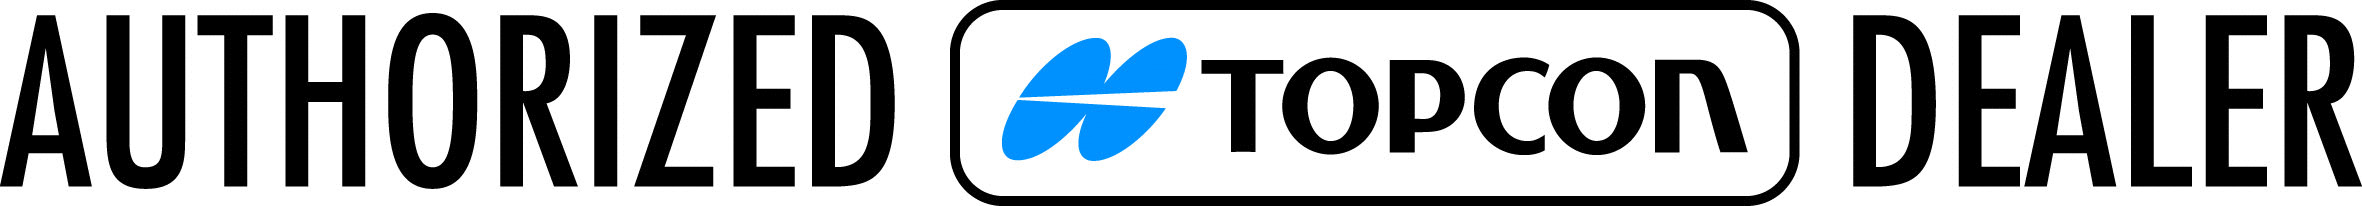 tc-r-tep_269712_authorizeddealer_logo